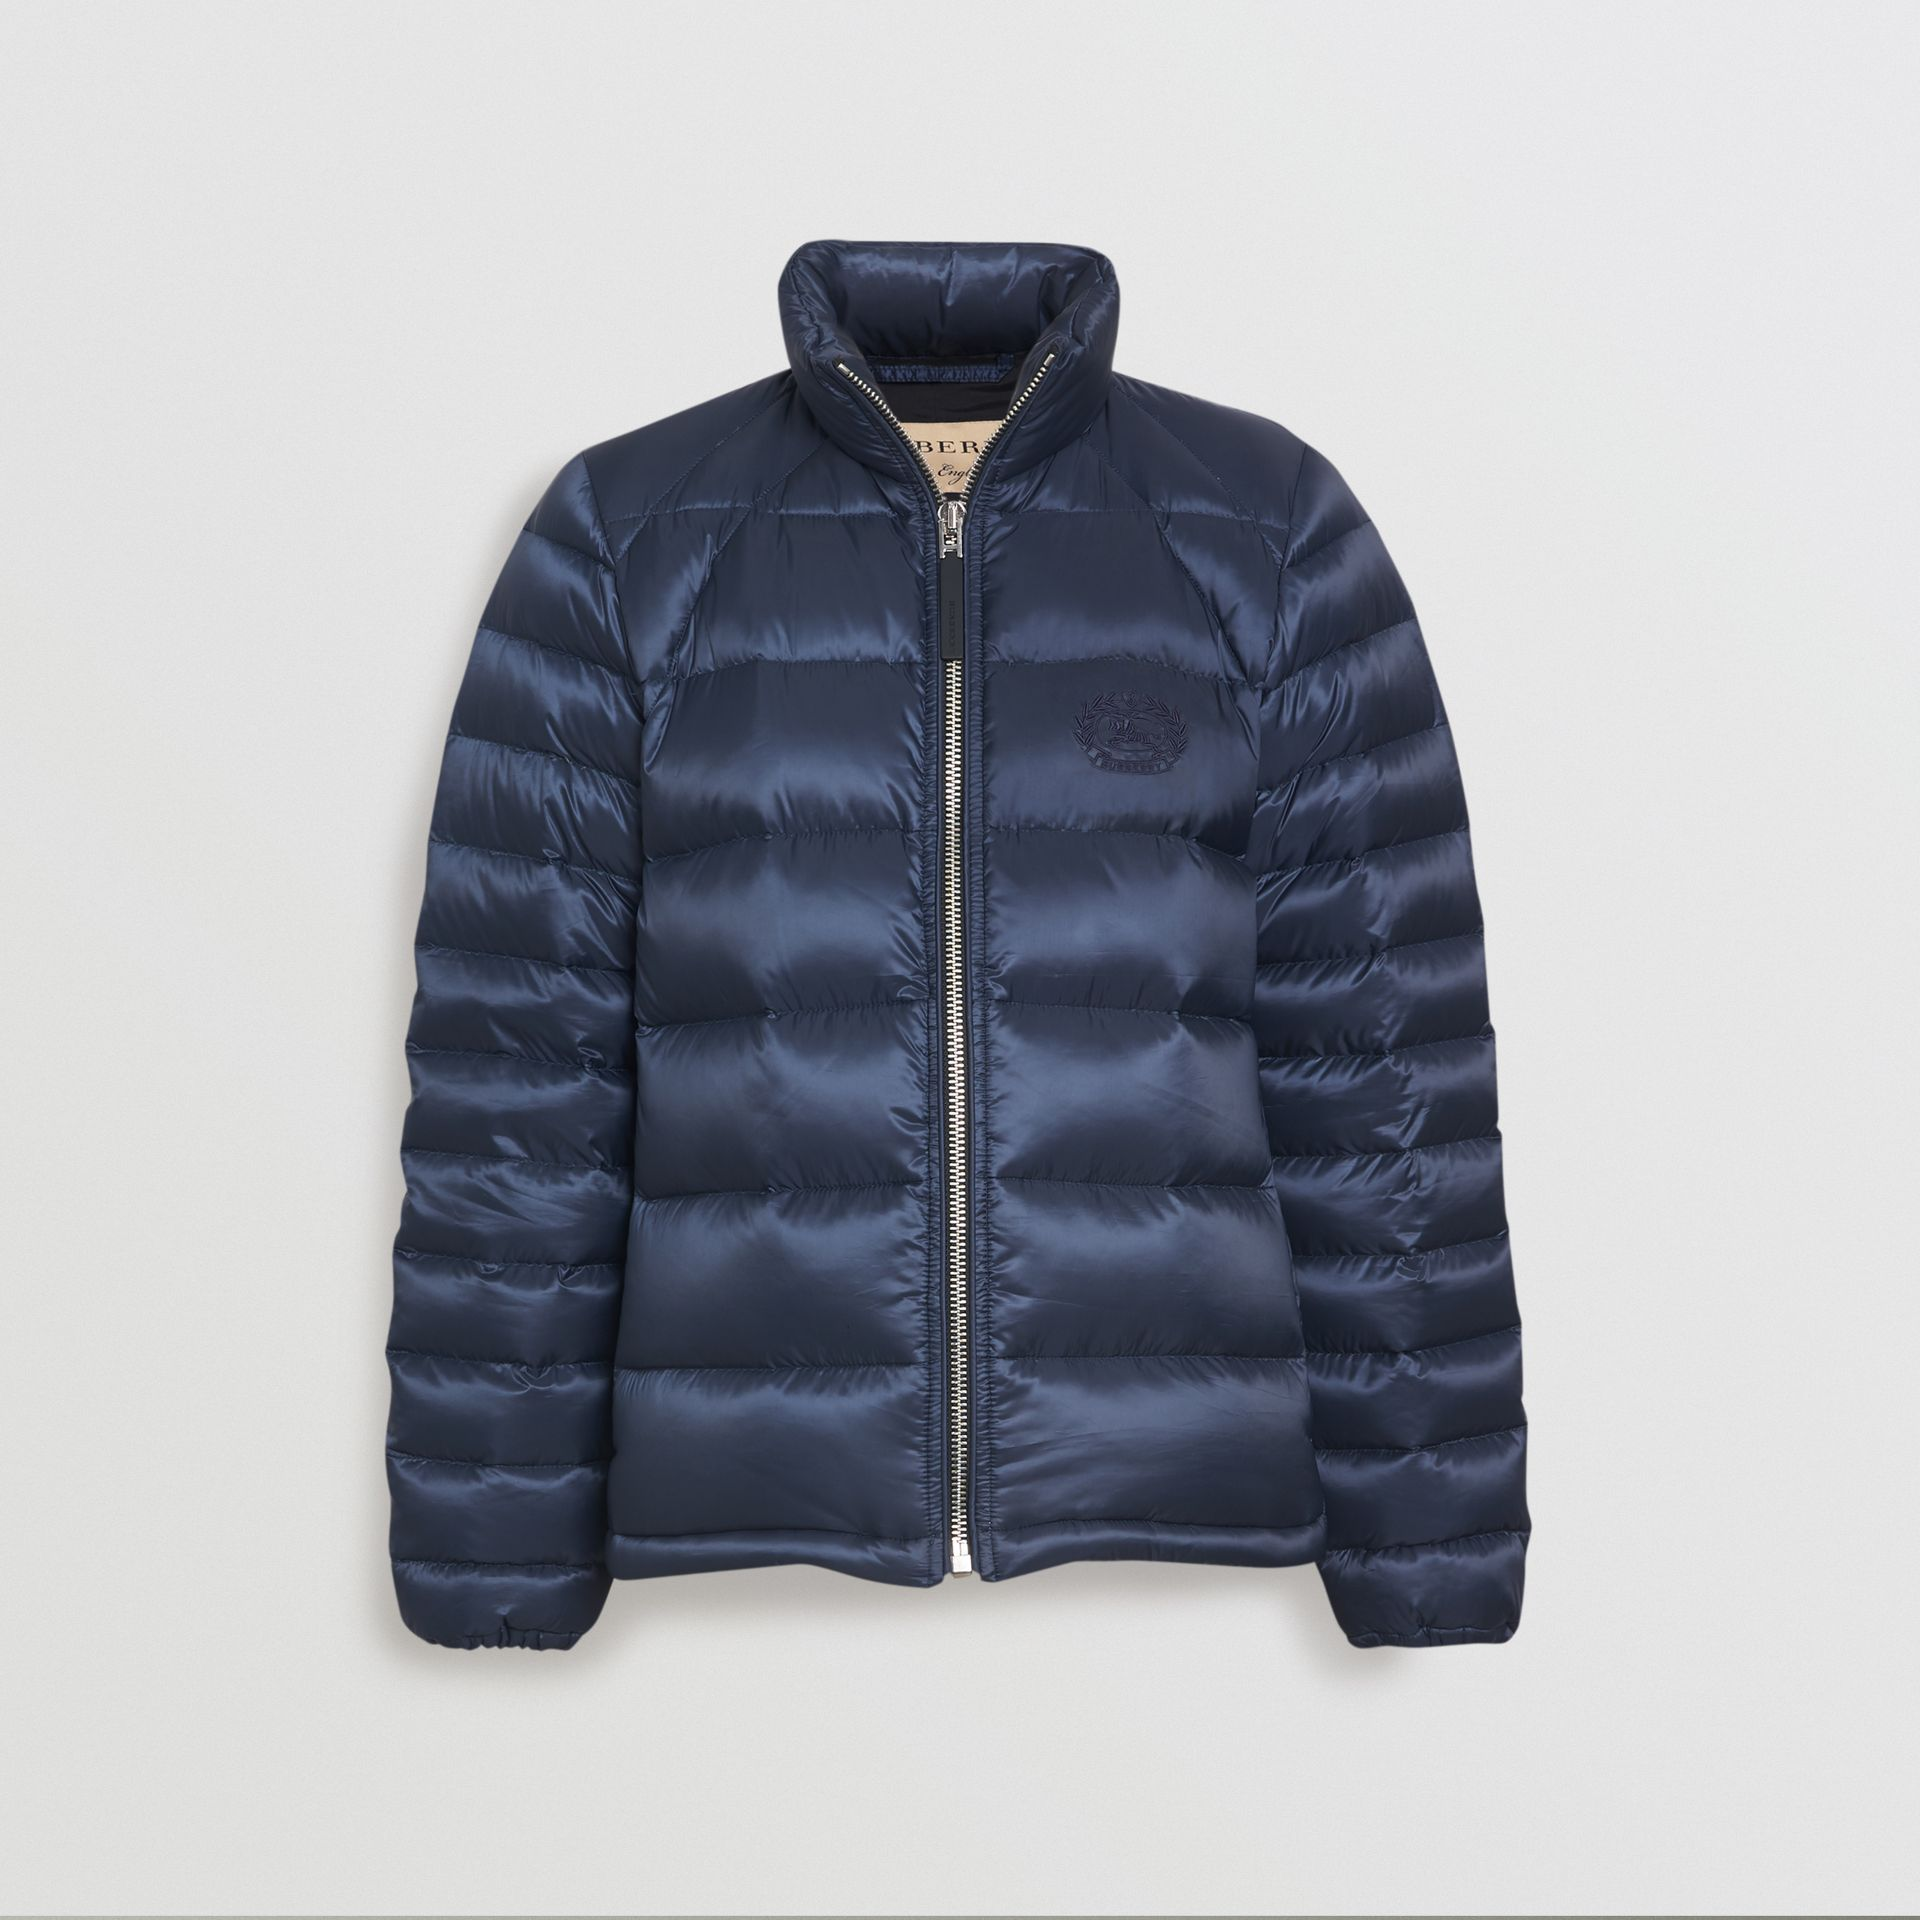 Down-filled Puffer Jacket in Navy - Women | Burberry United Kingdom - gallery image 2